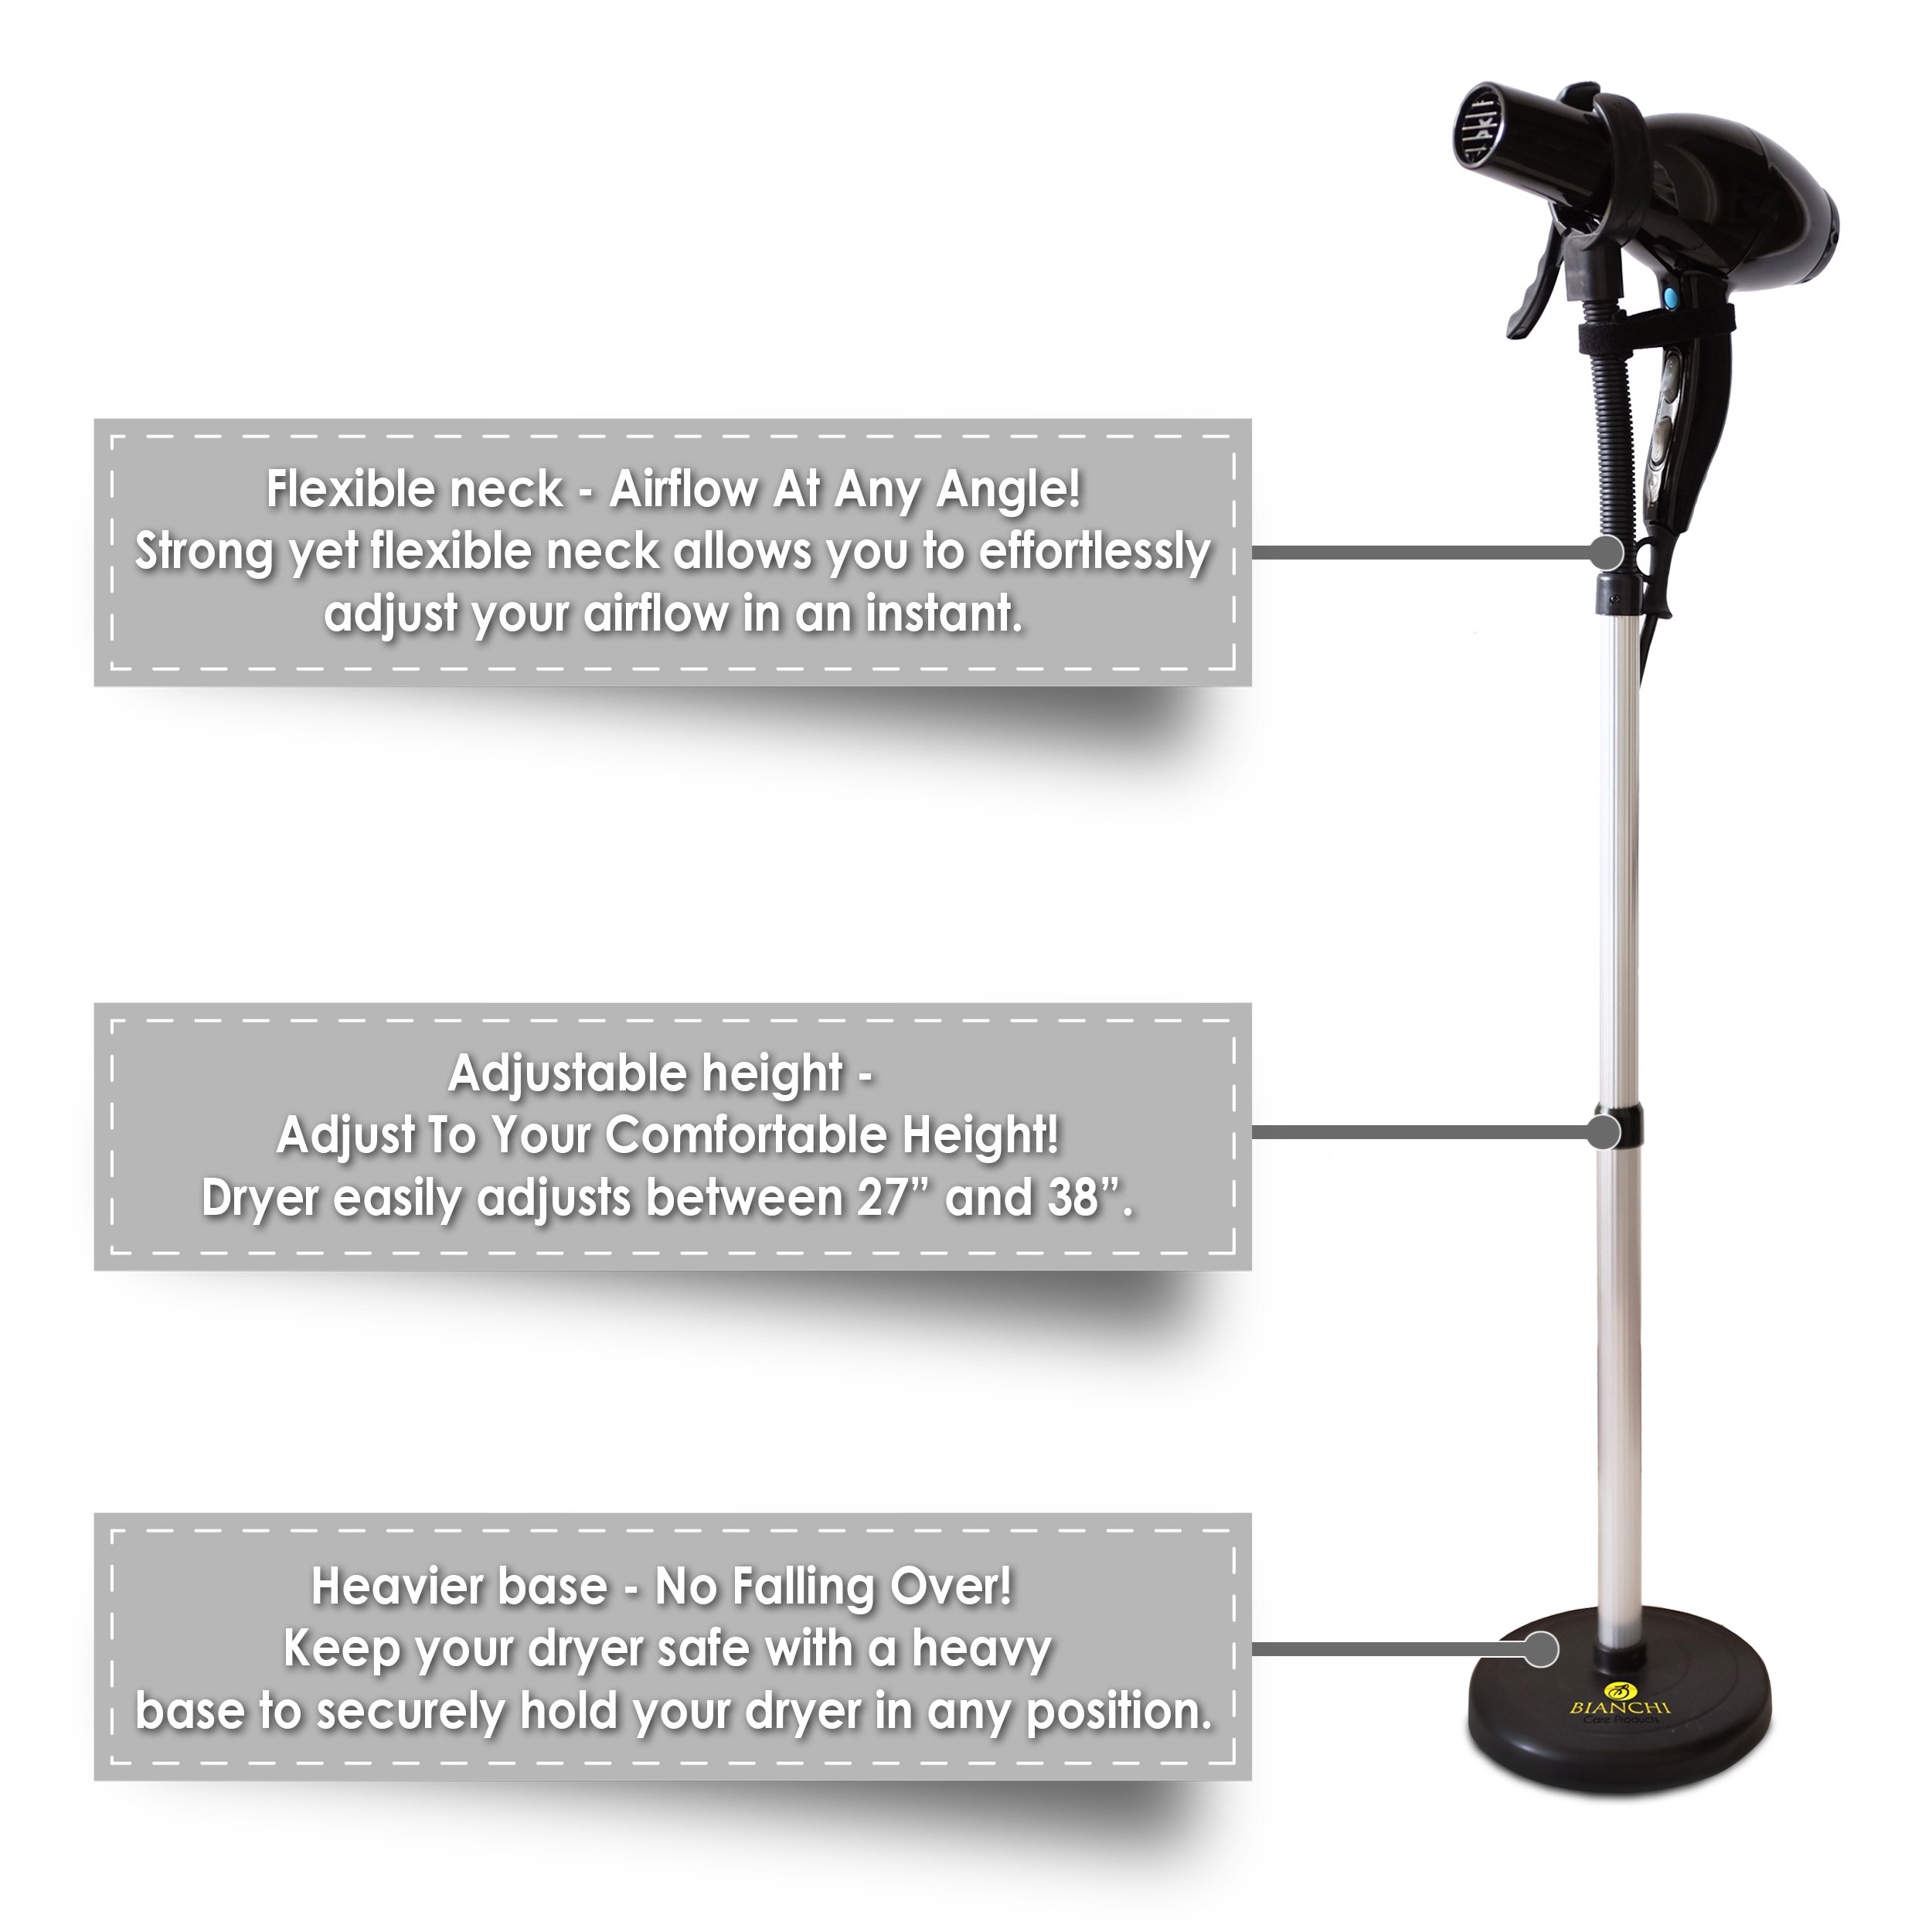 Luxury Hair Dryer Stand With Heavy Non-Tipping Base - Adjustable Height - Hands Free Blow Dryer Holder by Bianchi by Bianchi (Image #5)